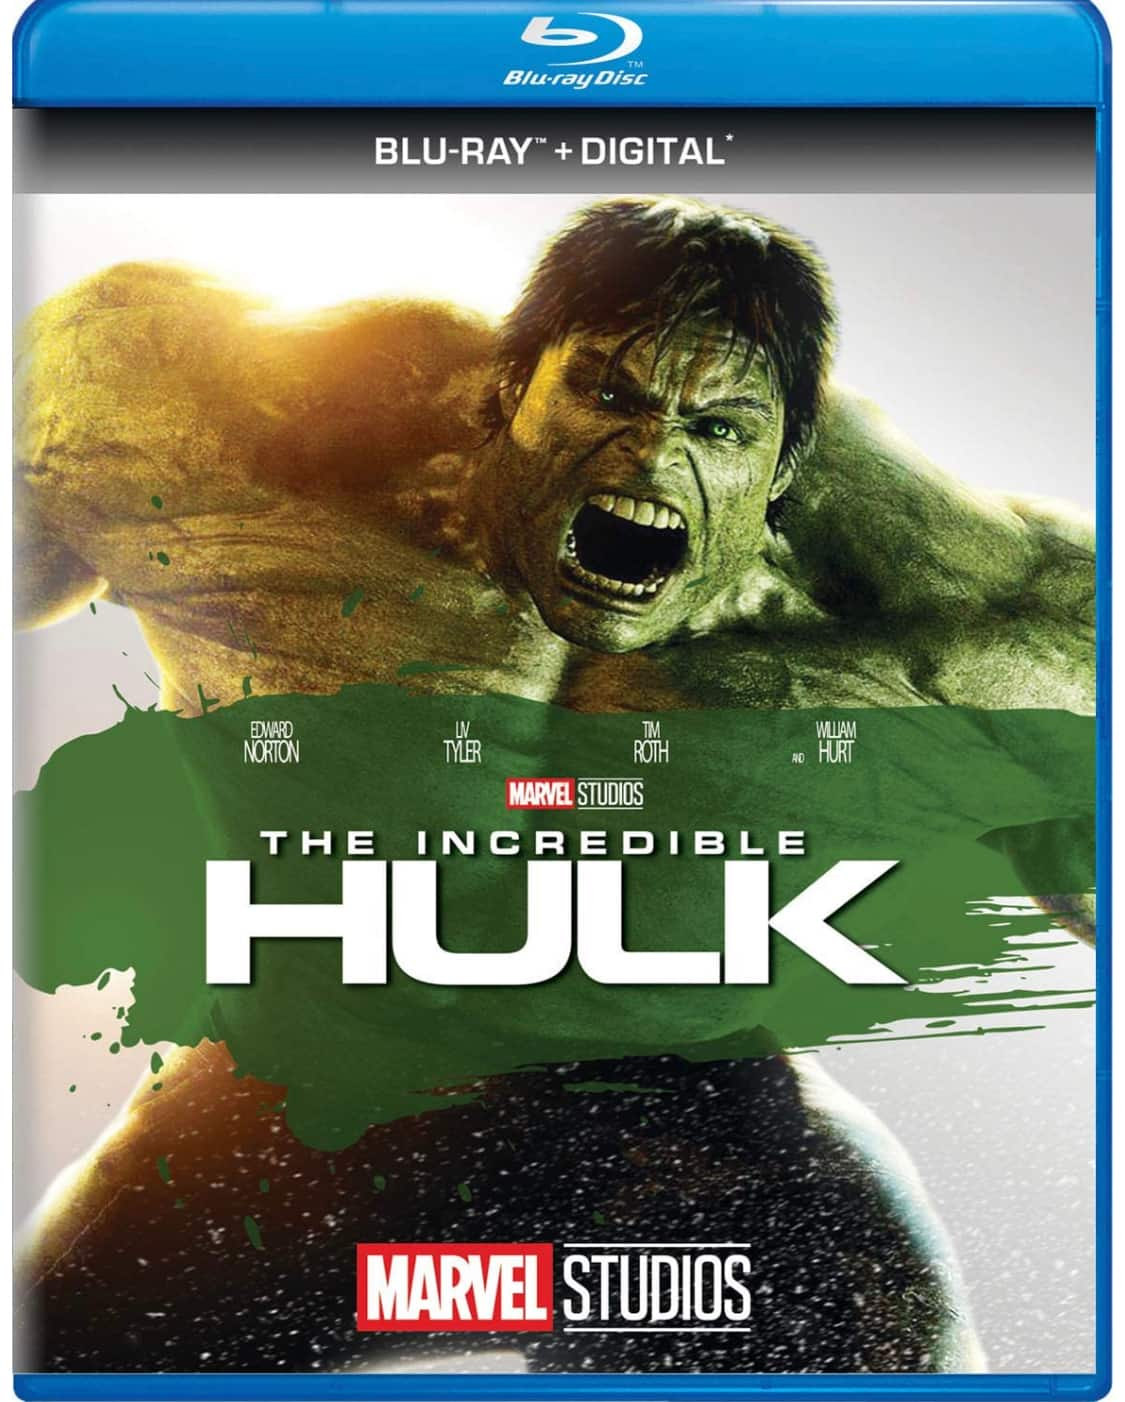 The Incredible Hulk Blu-ray + Digital Code - $5.99 & Prime FS